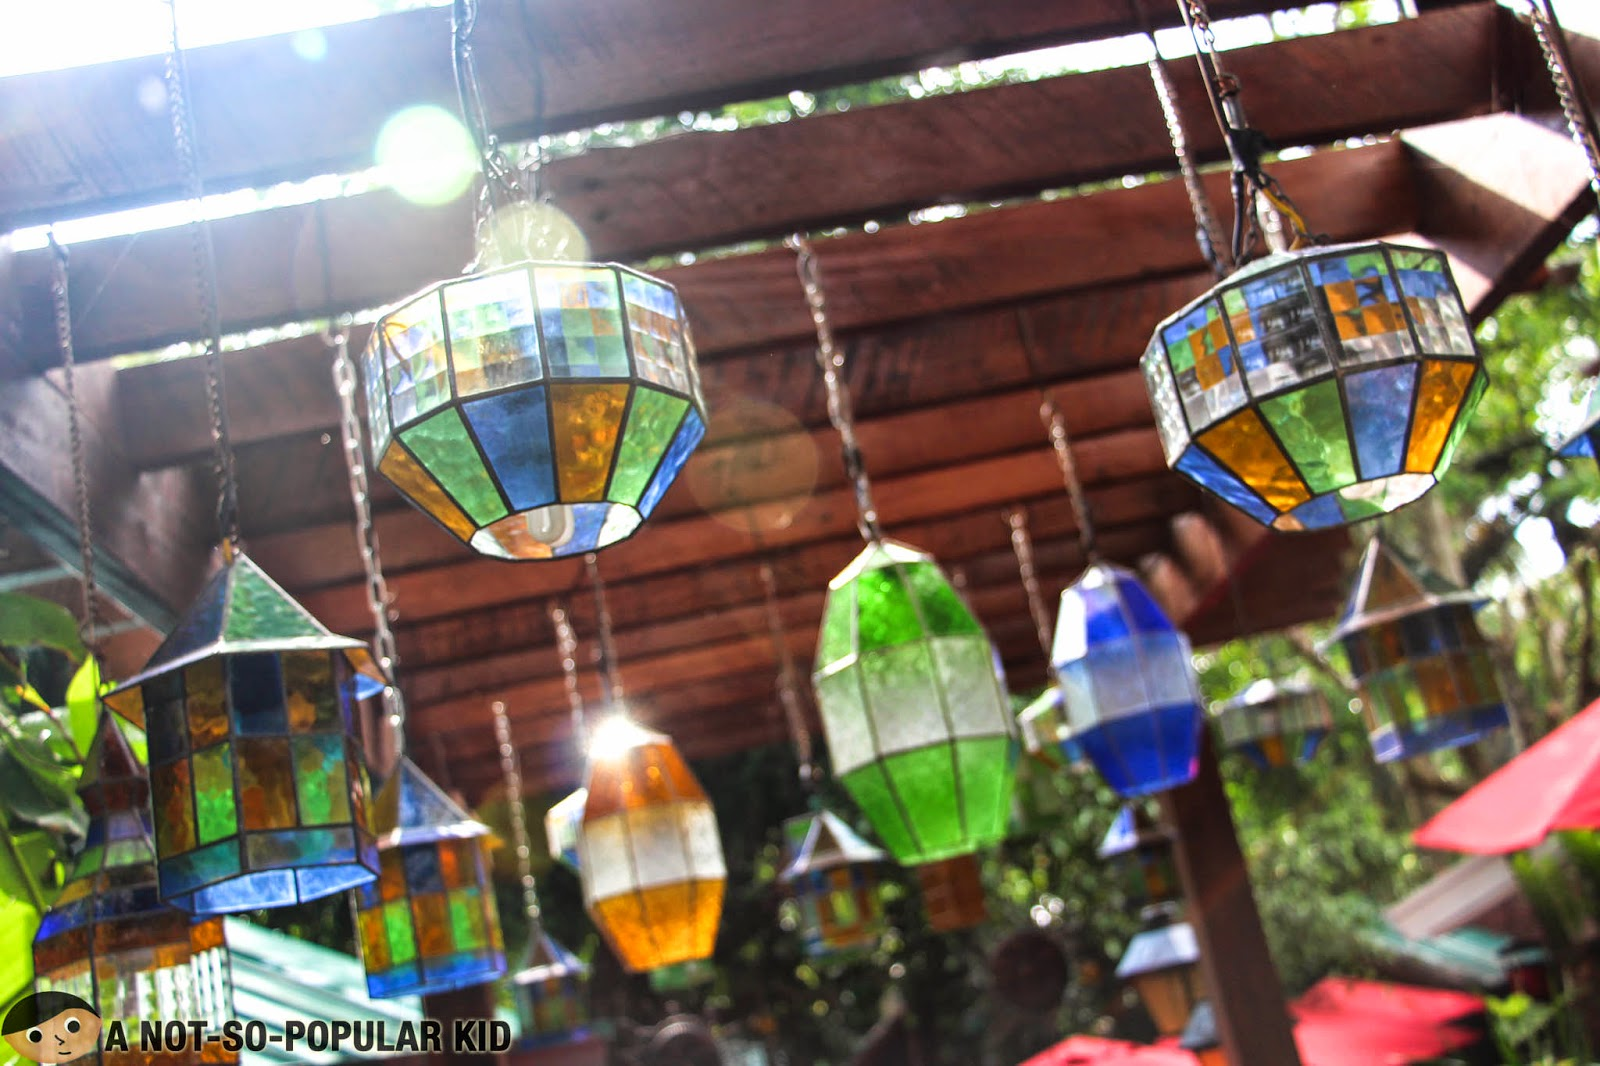 Colorful ceiling lamps in the garden like restaurant proper of Bag of Beans